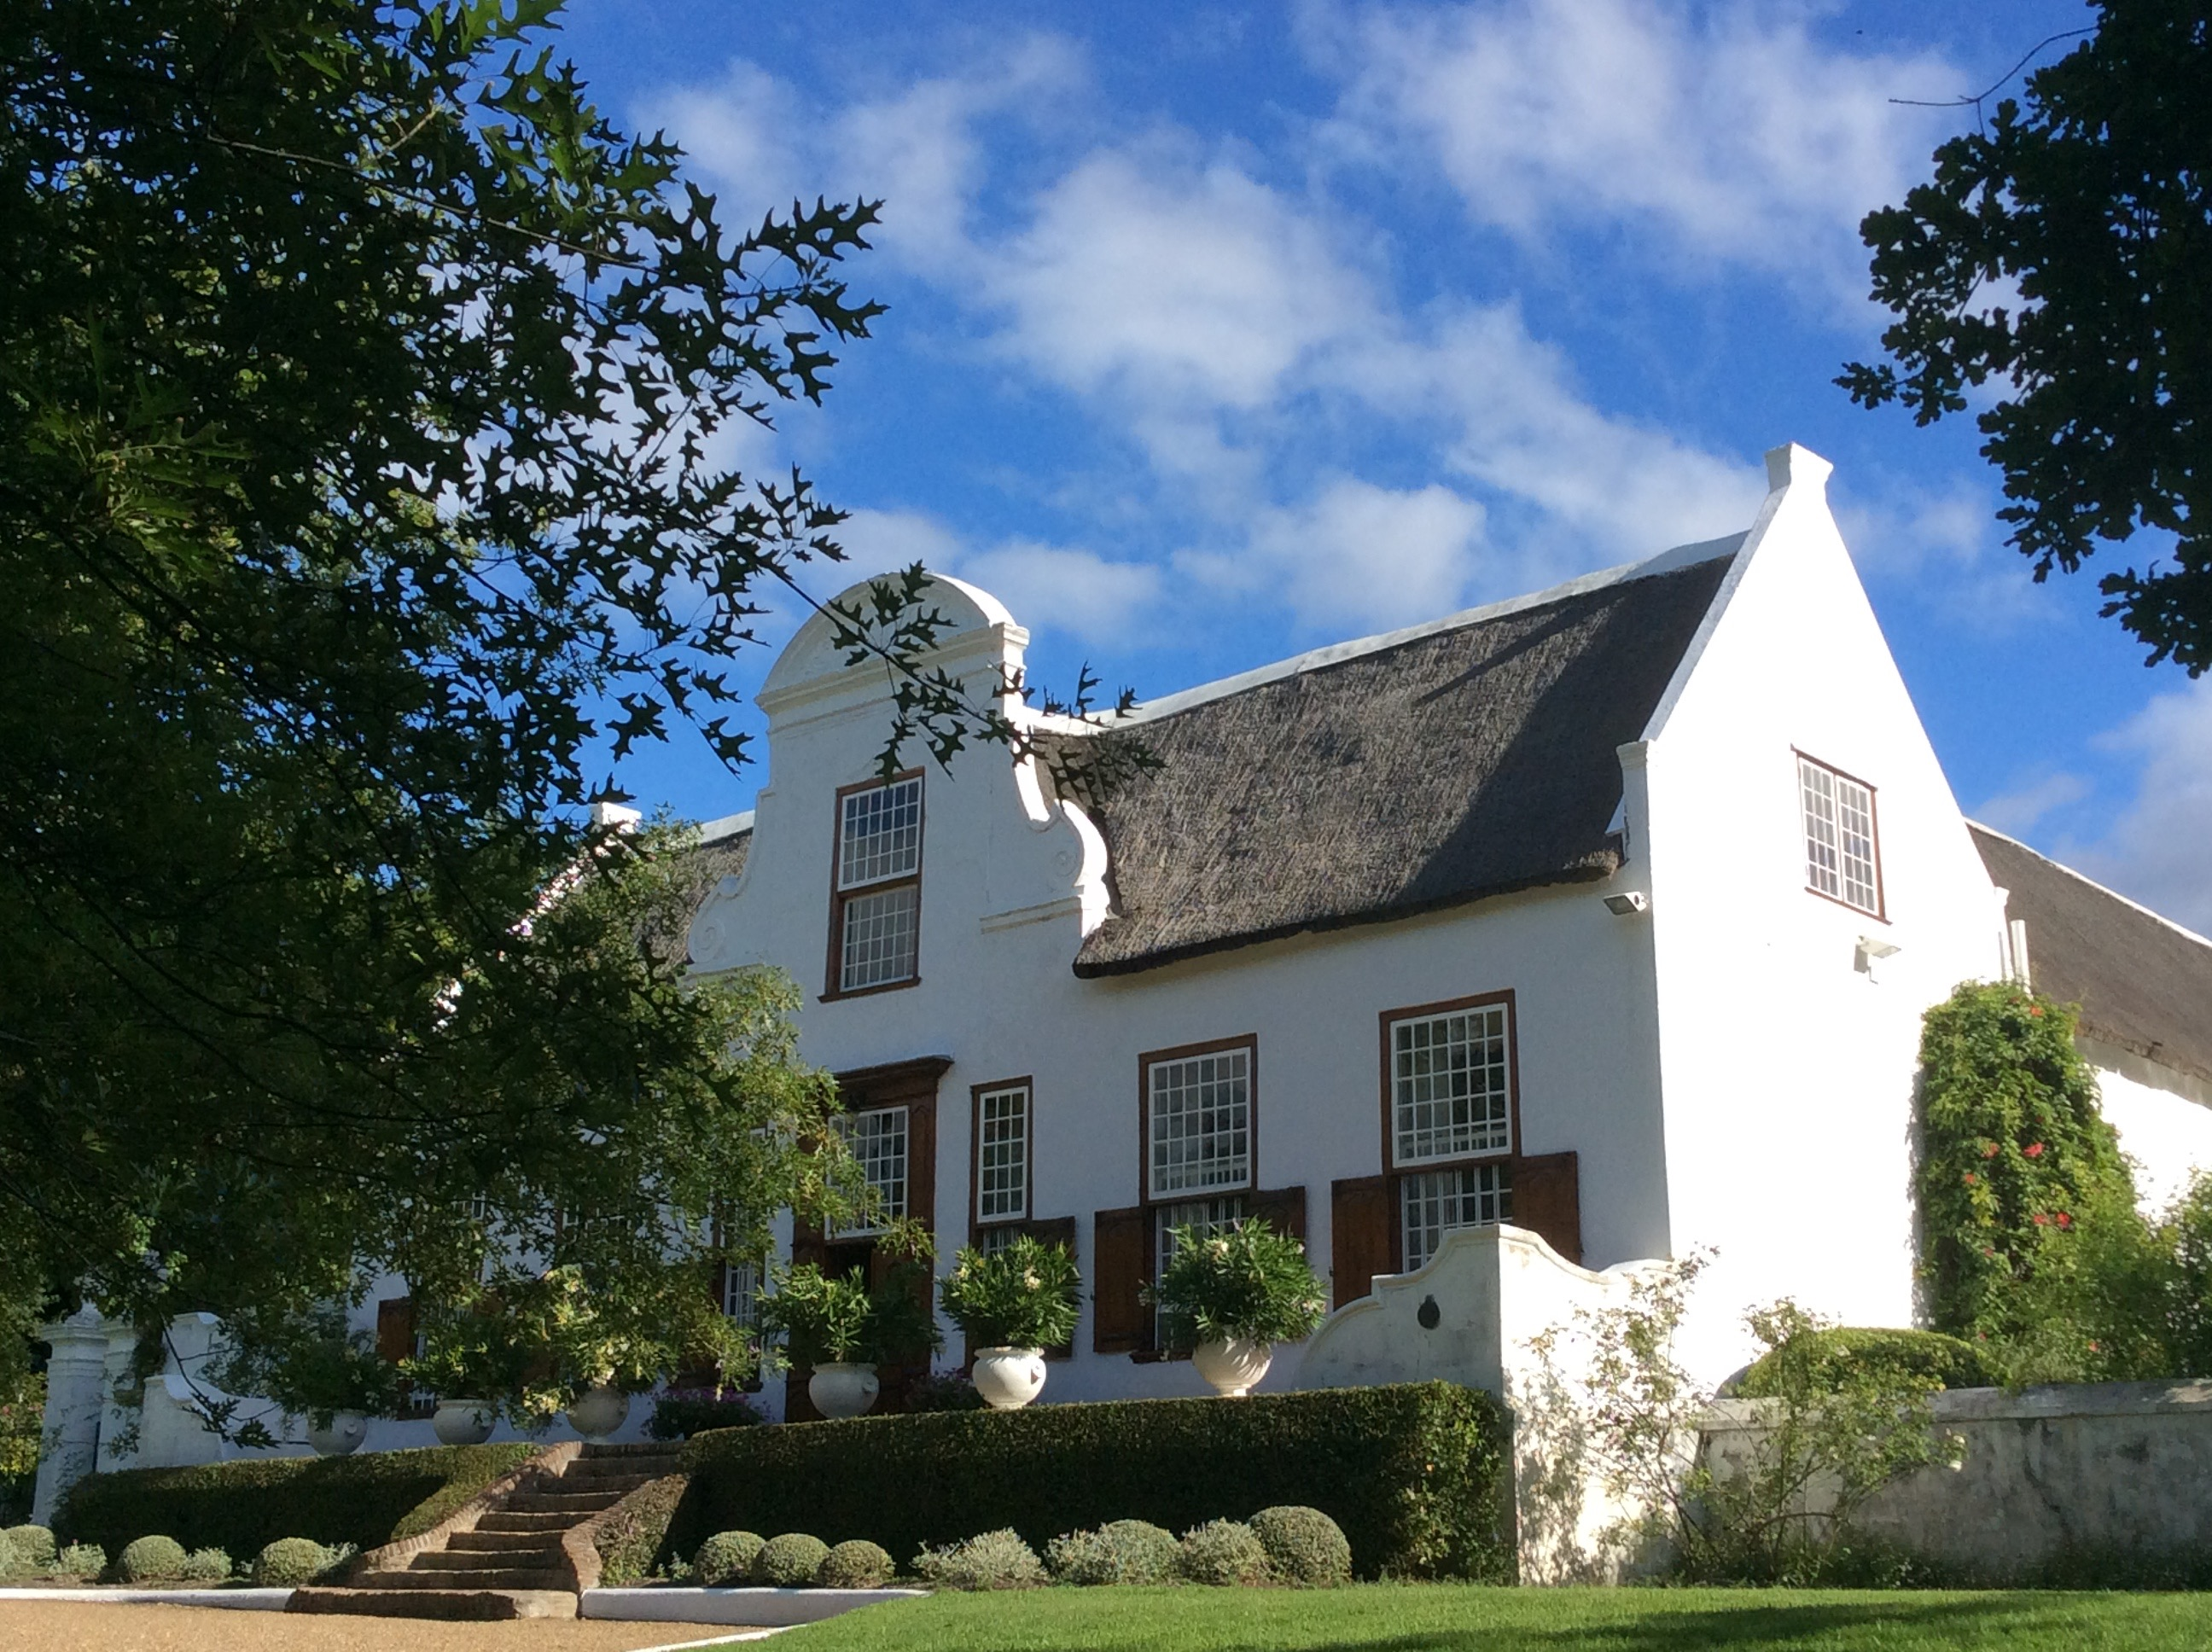 Private Houses & Gardens of South Africa